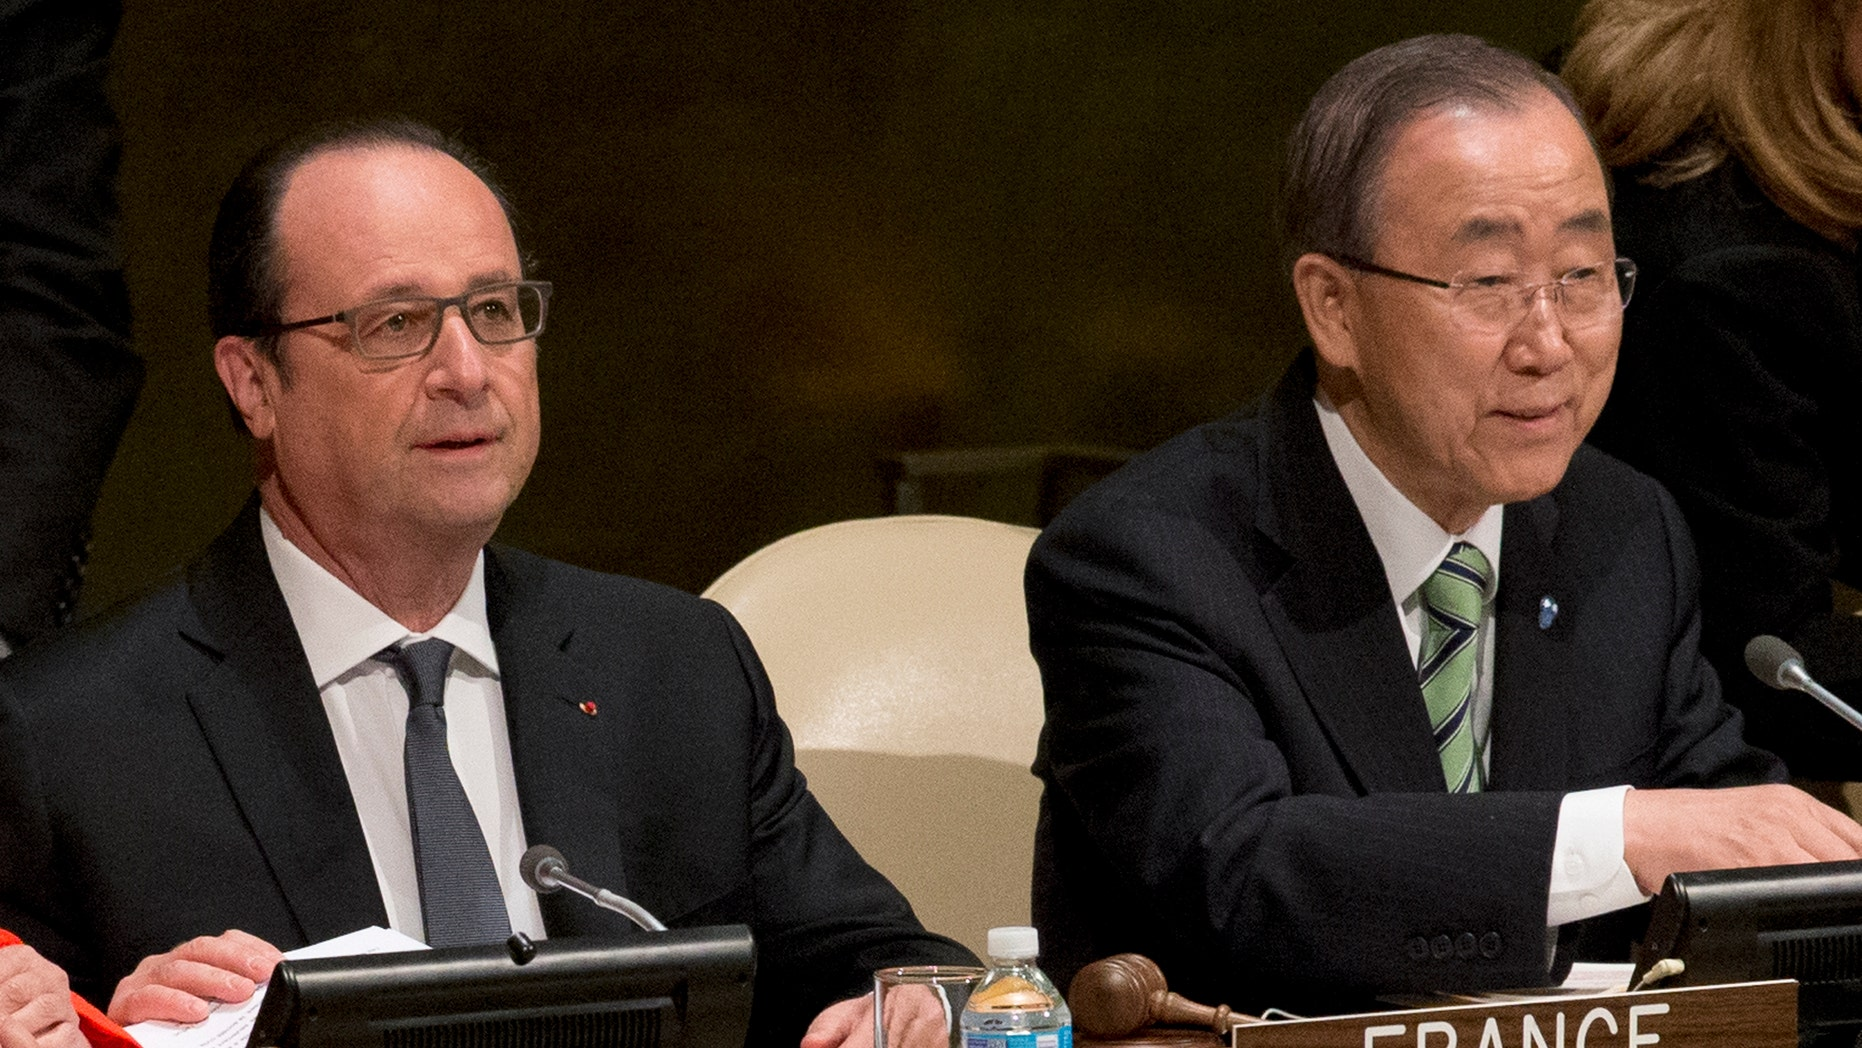 United Nations Secretary General Ban Ki-moon, right, and French President Francois Hollande attend the Paris Agreement on climate change ceremony, Friday, April 22, 2016 at U.N. headquarters. (AP Photo/Mary Altaffer)